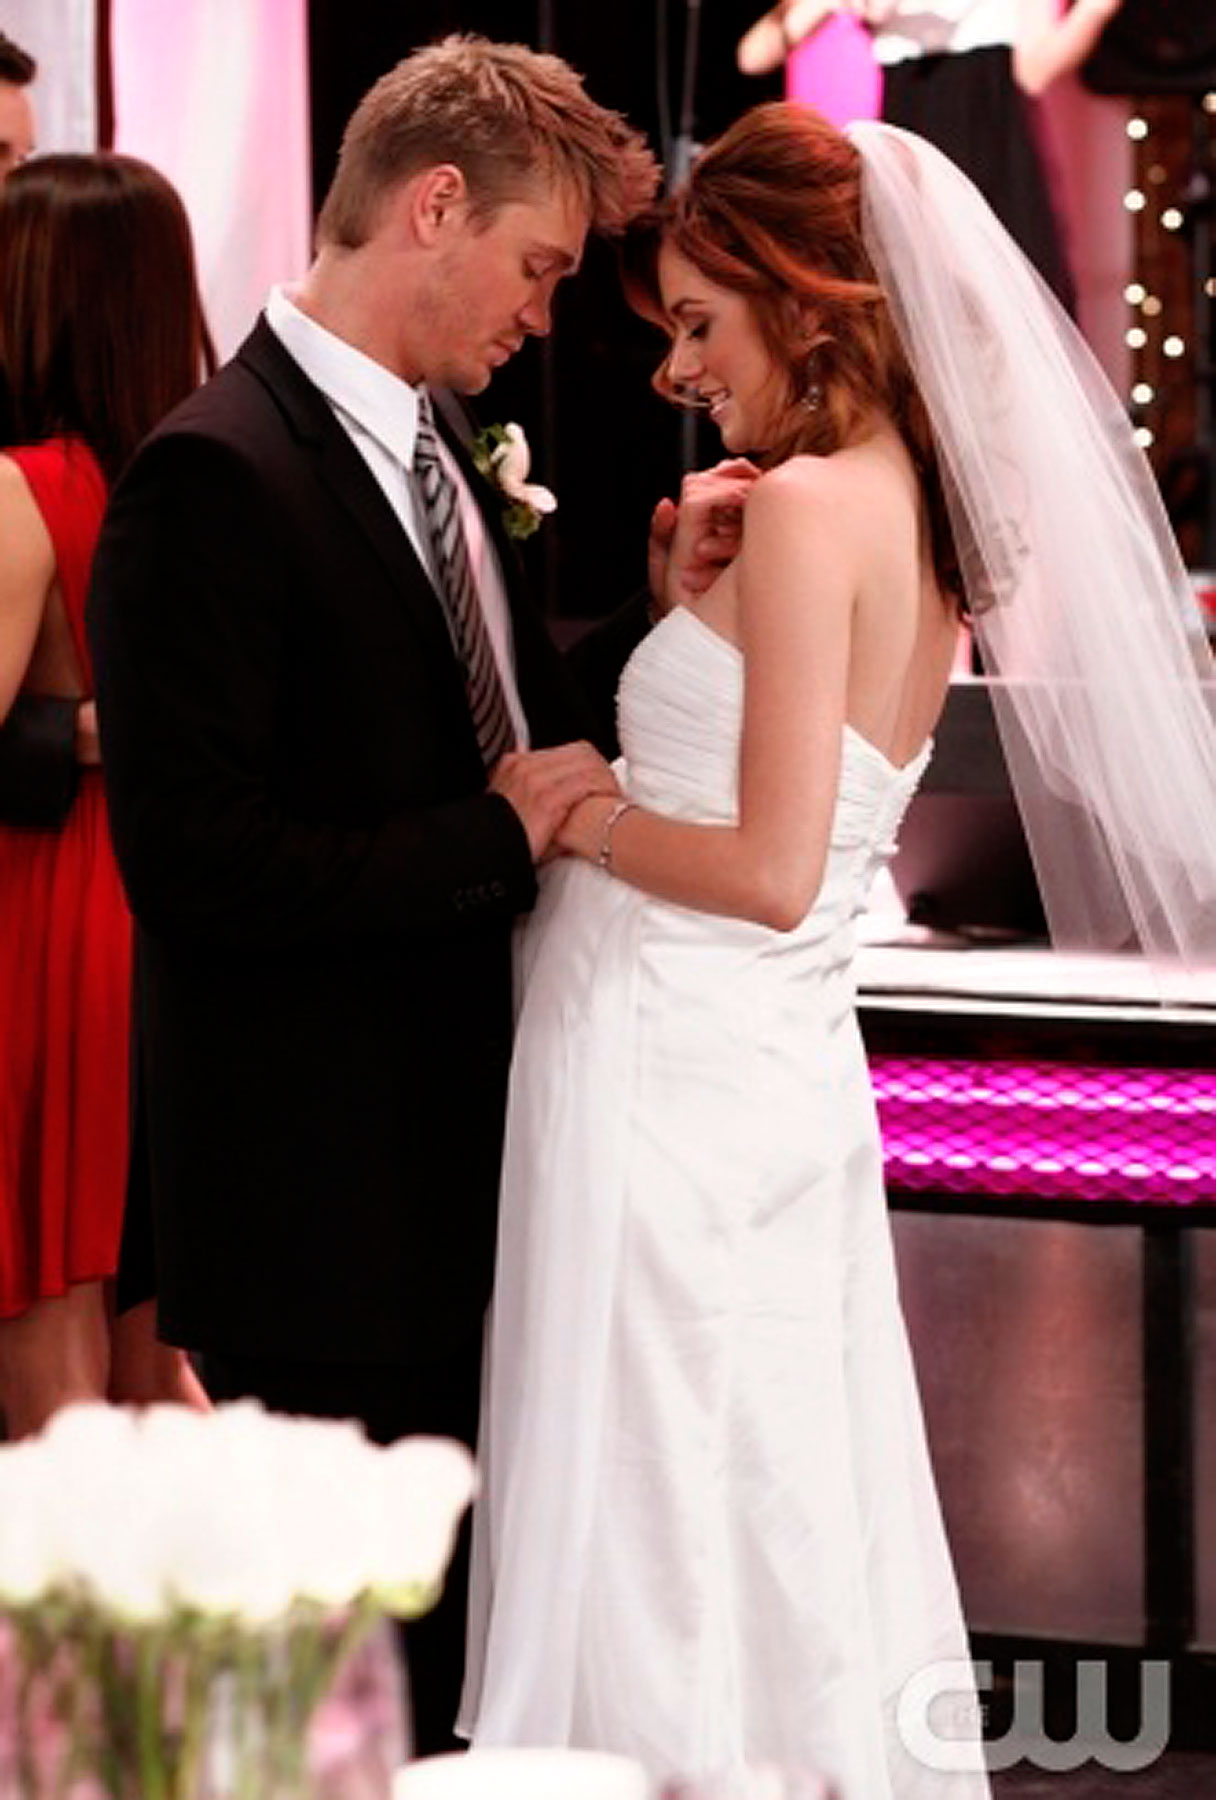 Chad Michael Murray and Hilarie Burton's 'One Tree Hill' Exit: All About the Benjamins?